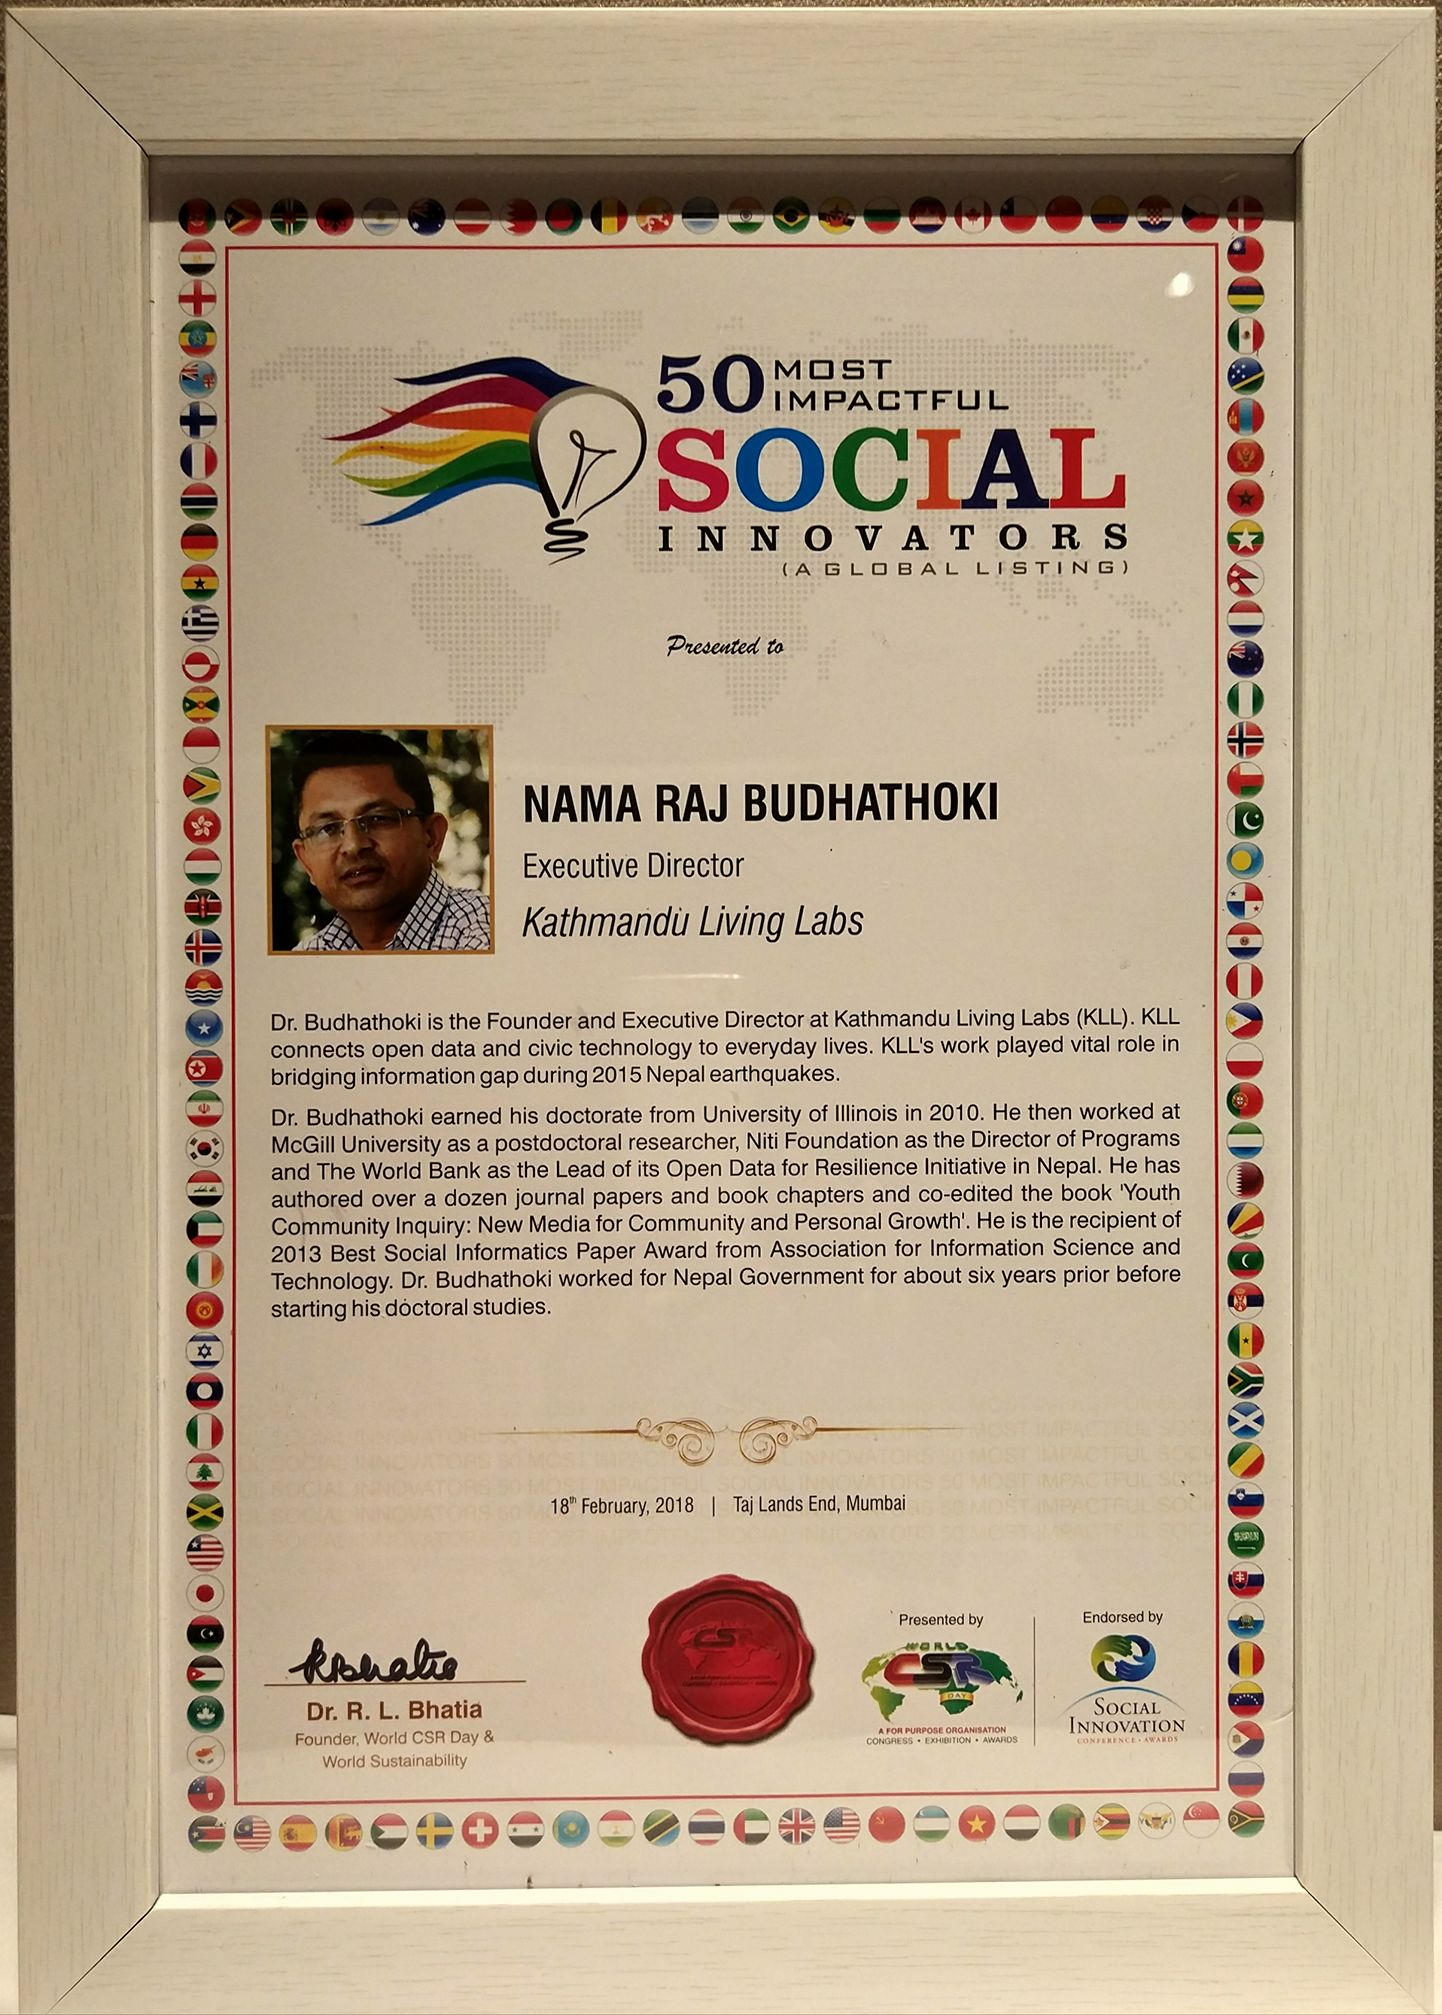 Awarded with the 50 Most Impactful Social Innovators Award